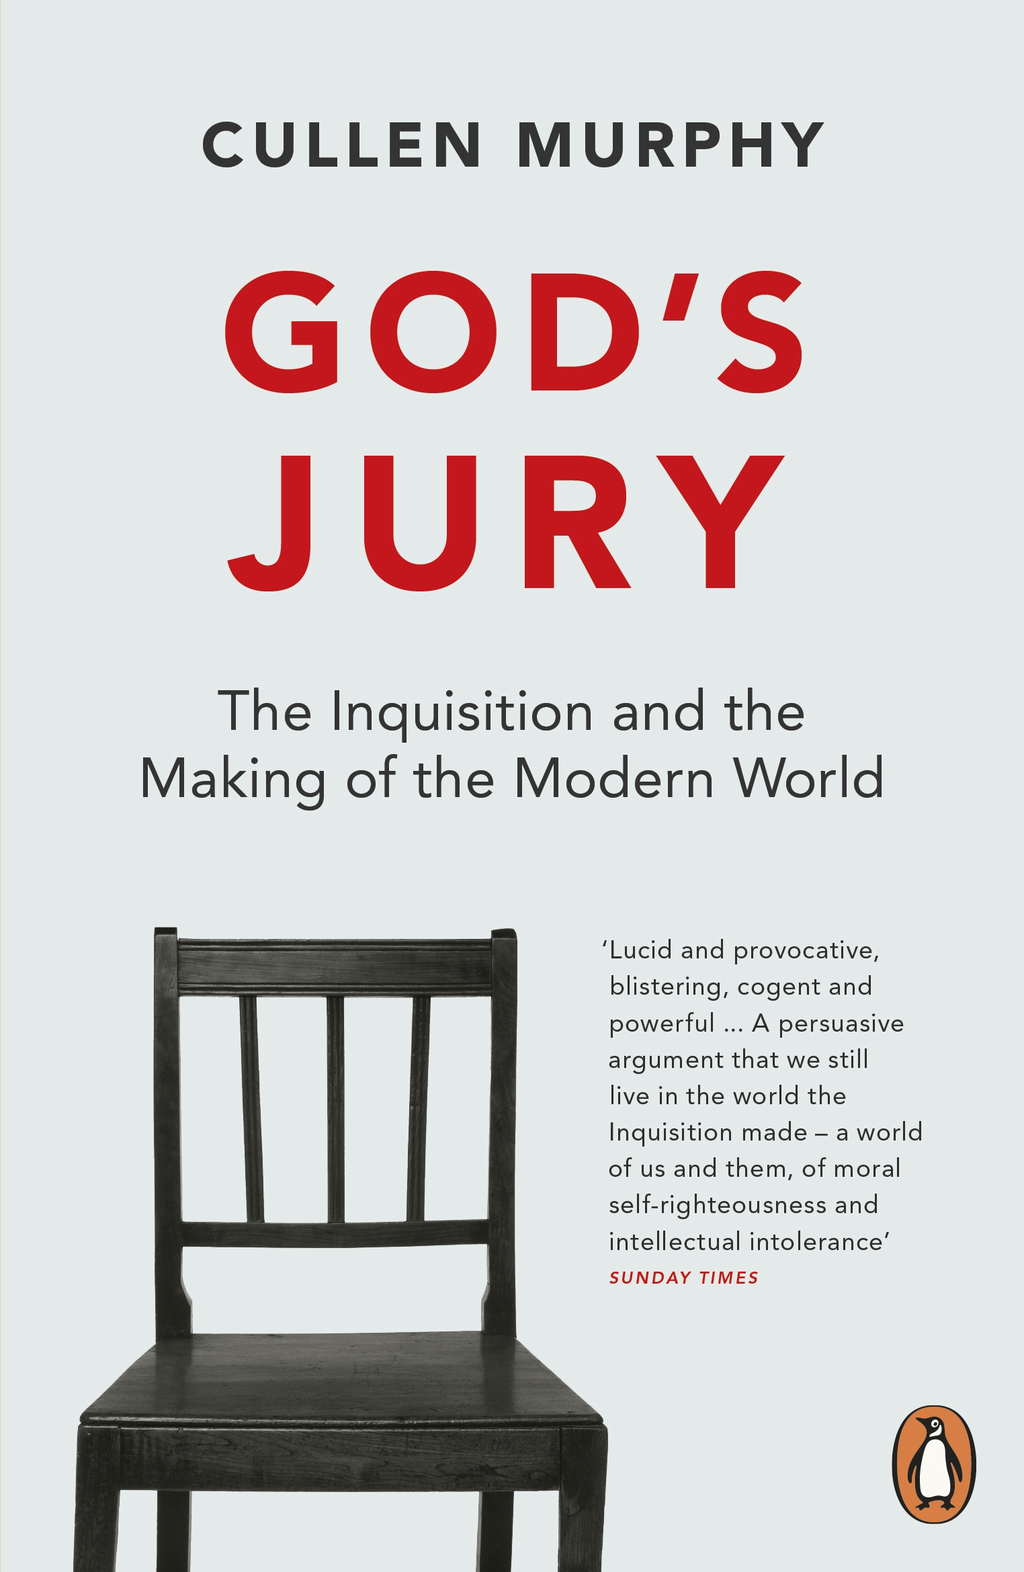 God's Jury The Inquisition and the Making of the Modern World